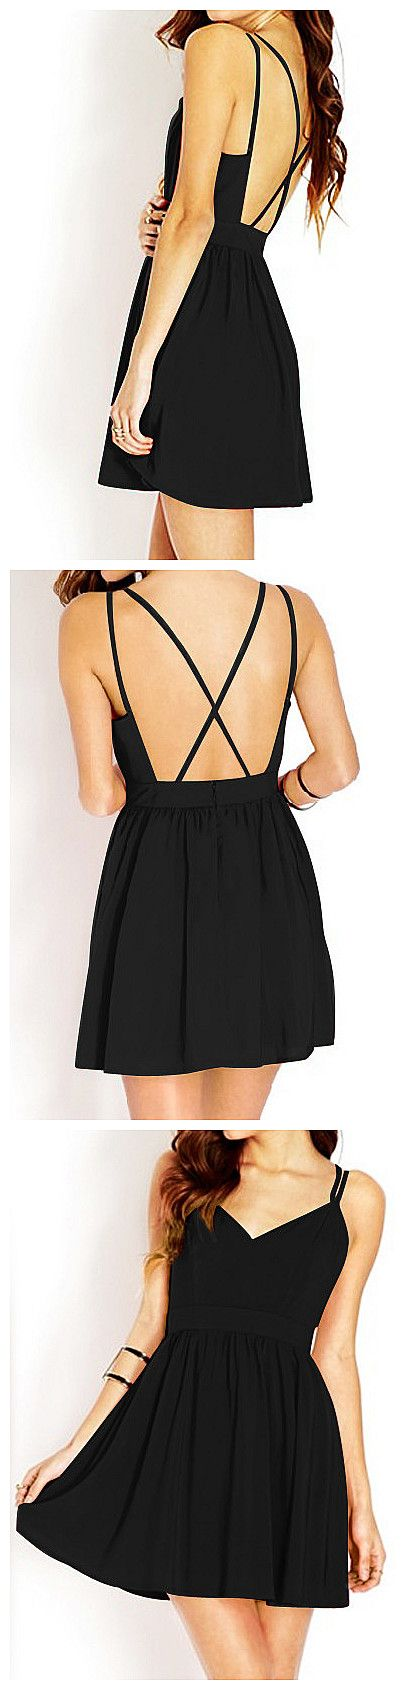 Crisscross Cutout Back Dress - perfect little black dress for summer- great for concerts, parties, or brunch with the ladies!